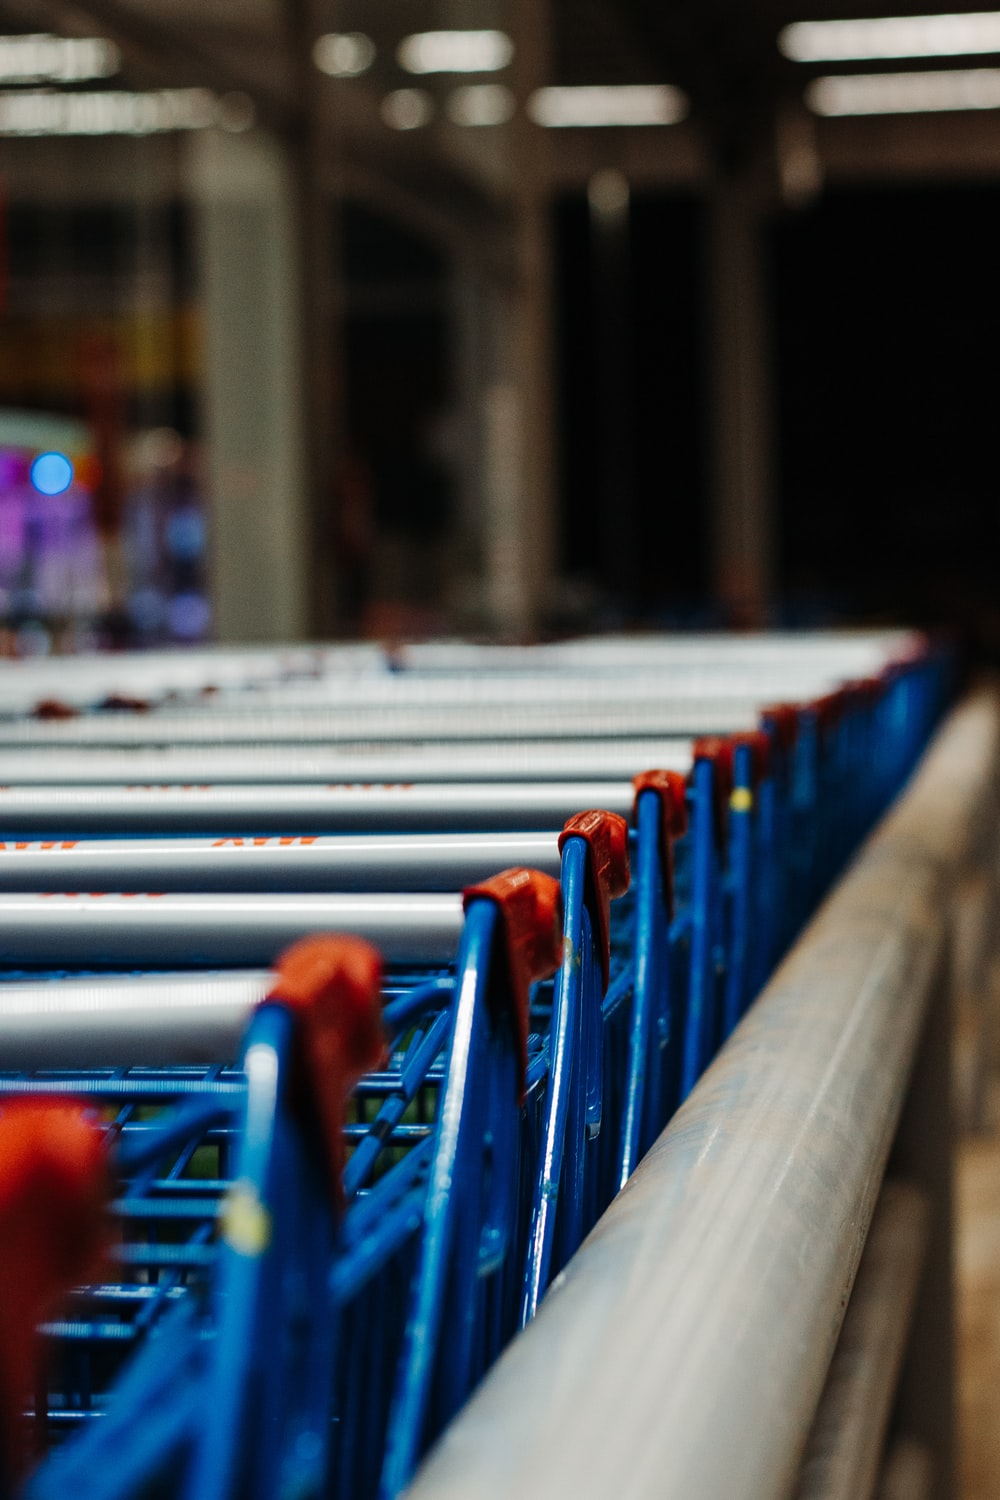 blue and gray shopping carts